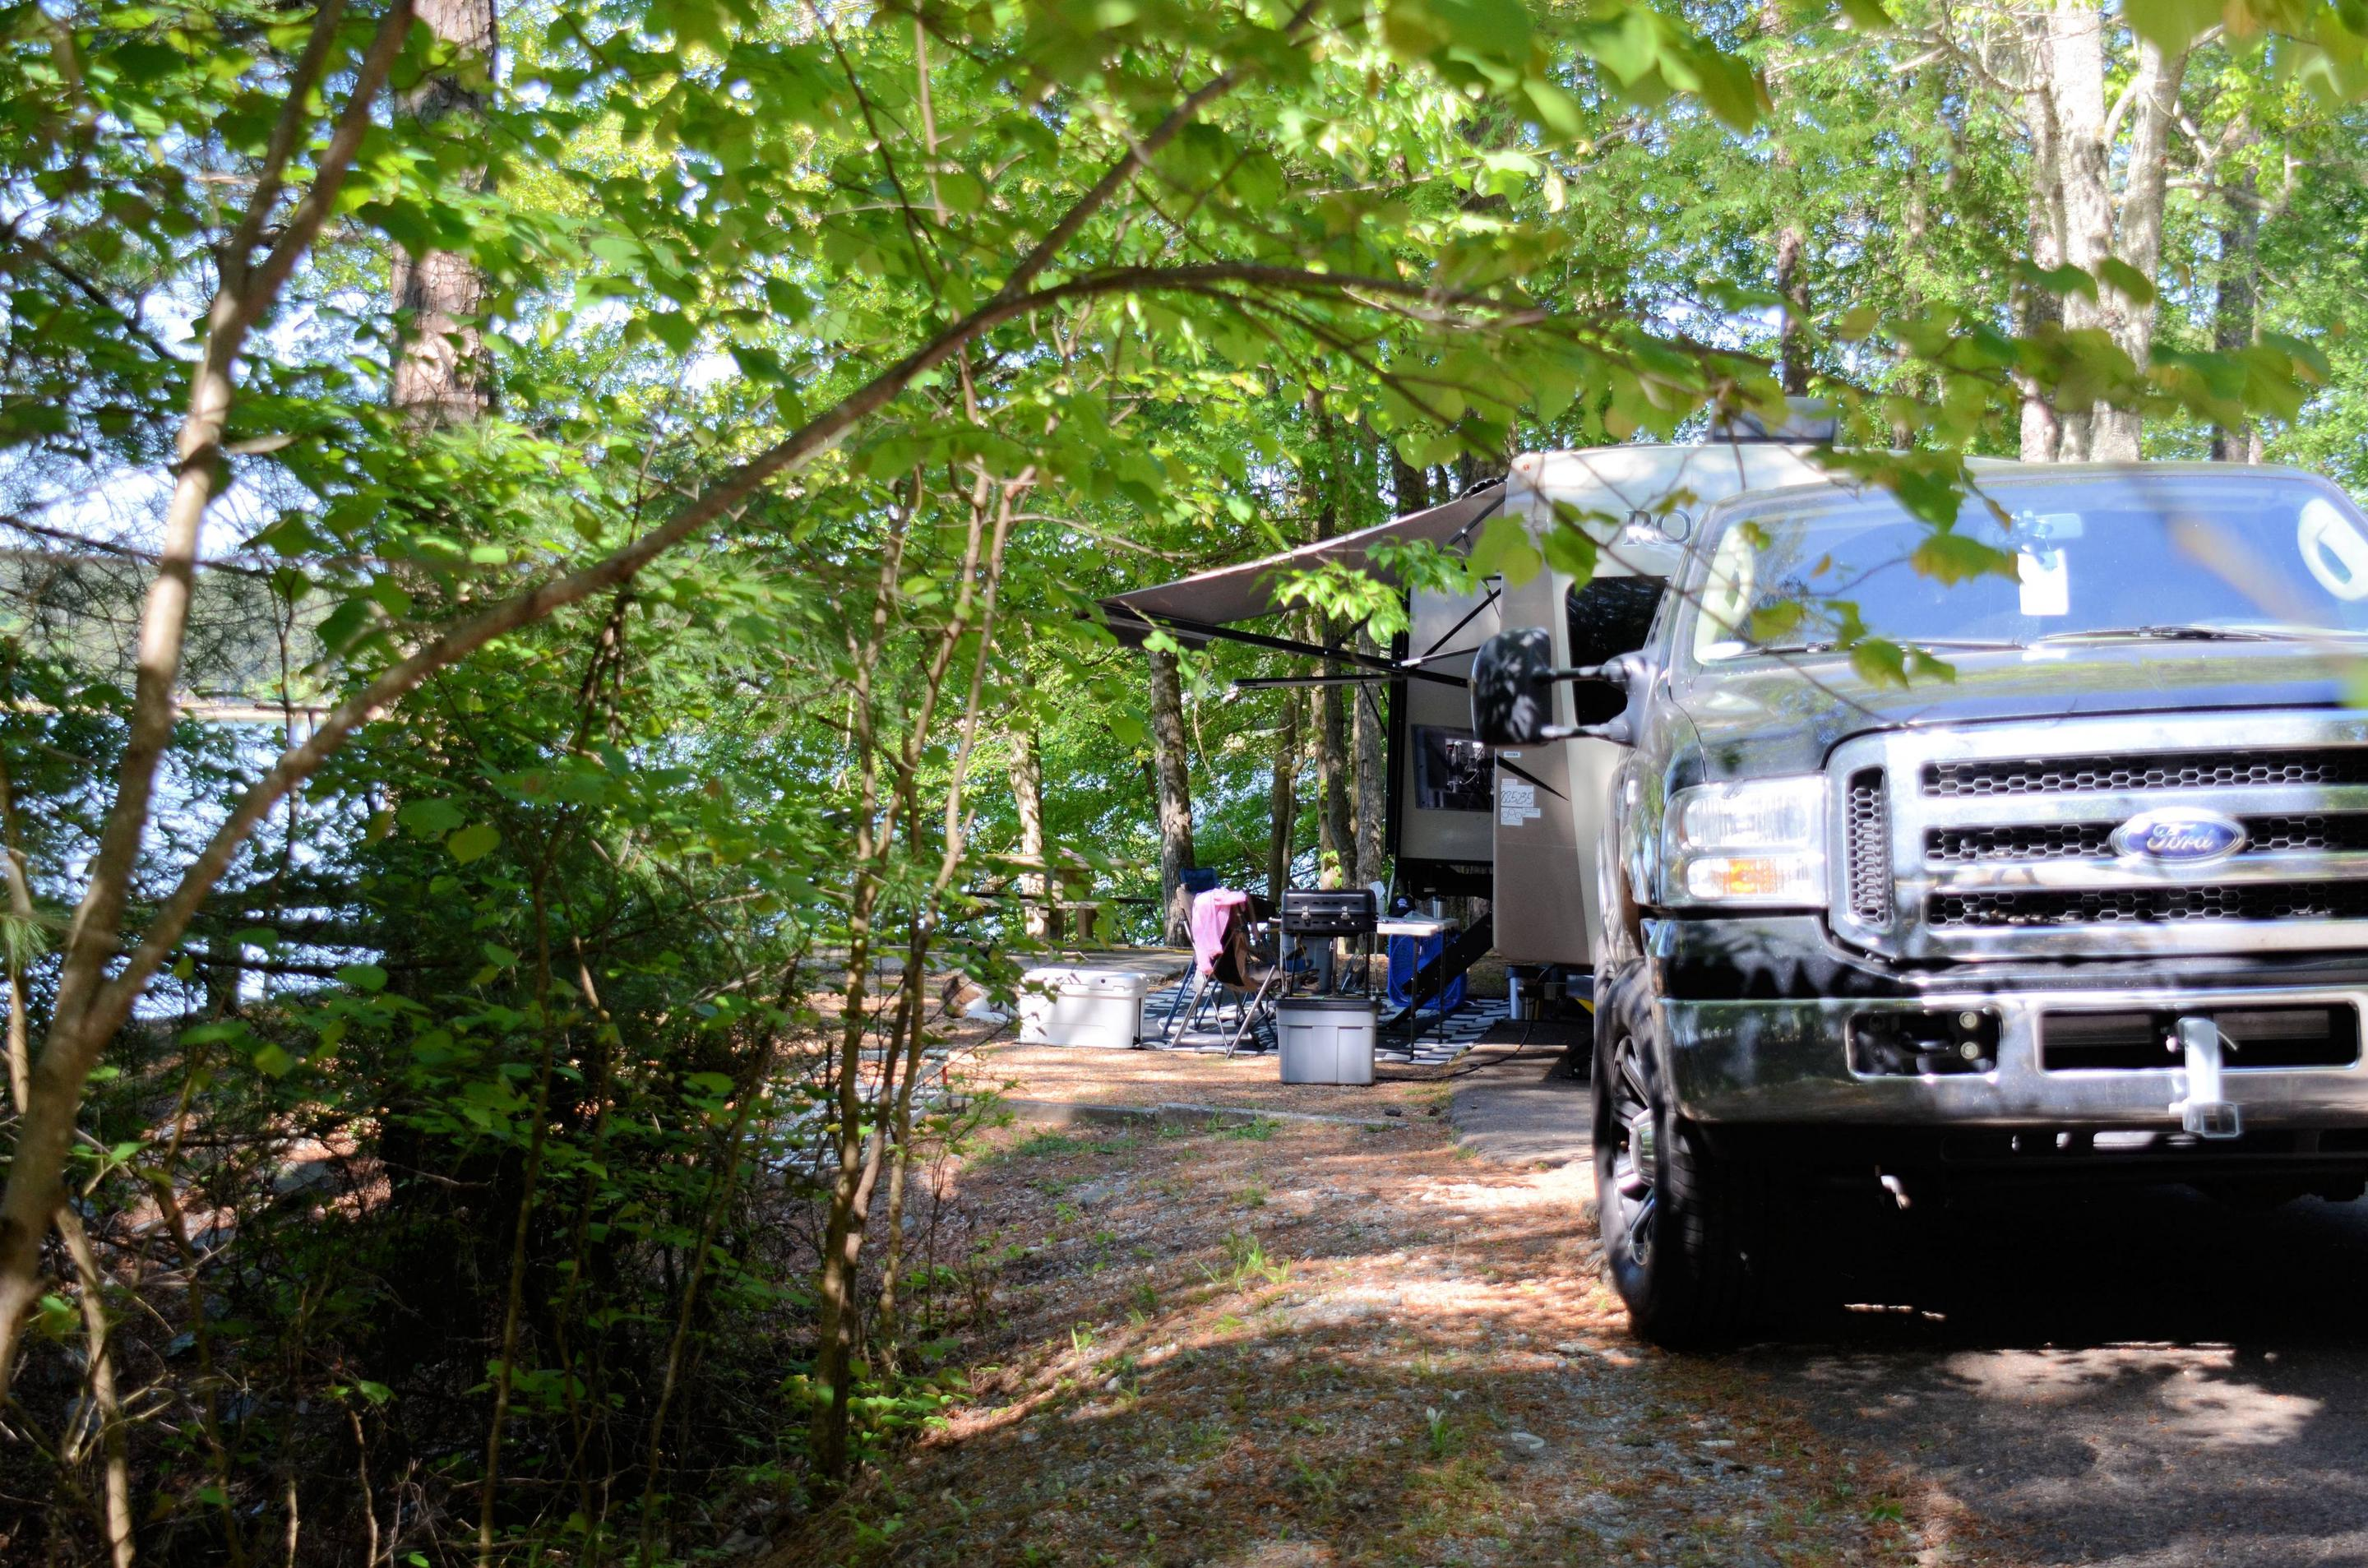 Awning-side clearance.McKinney Campground, campsite 47.